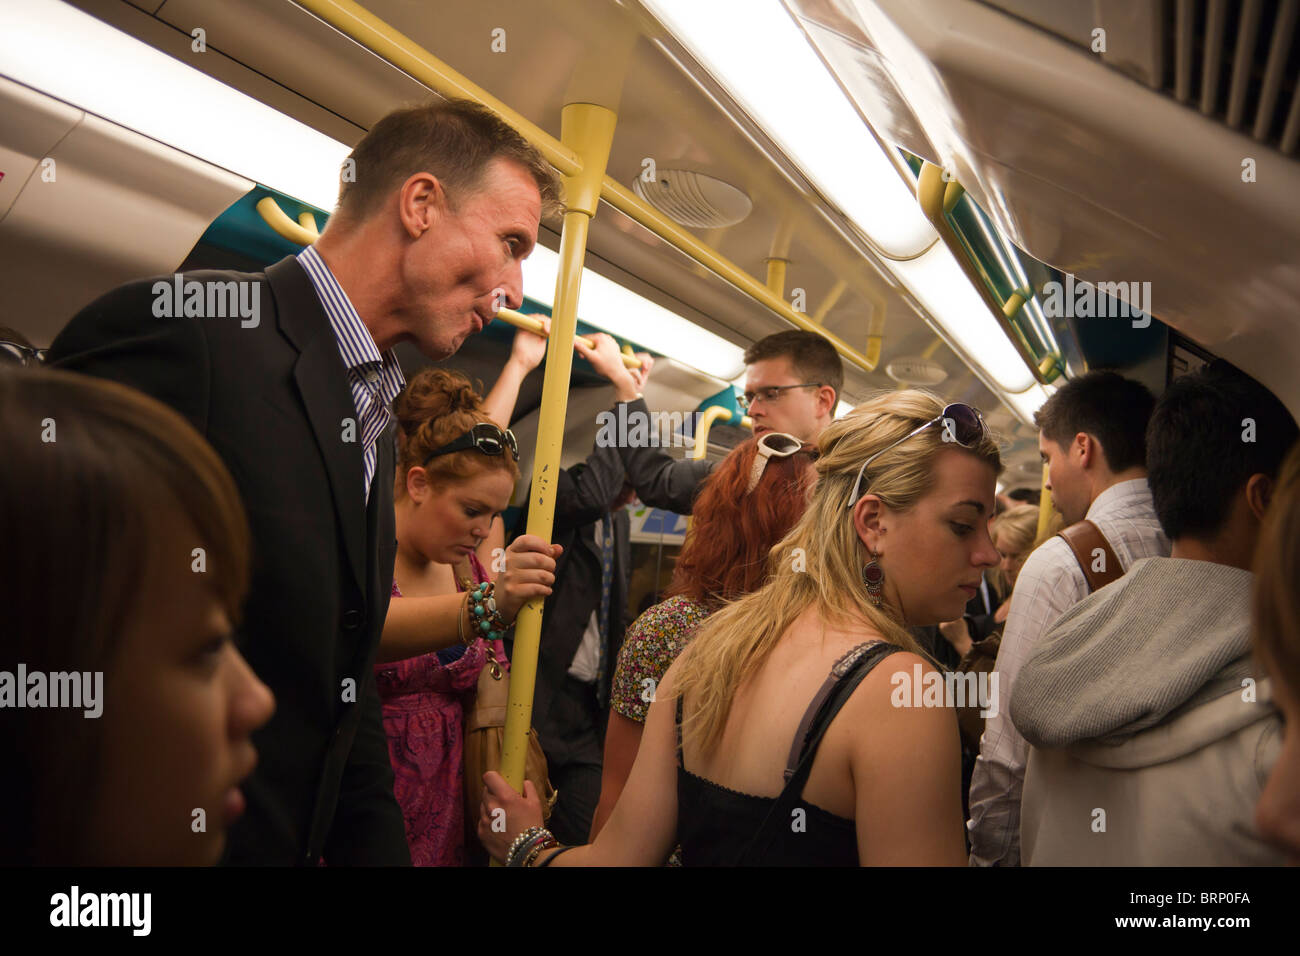 crowded tube carriage, London Underground, London, England - Stock Image